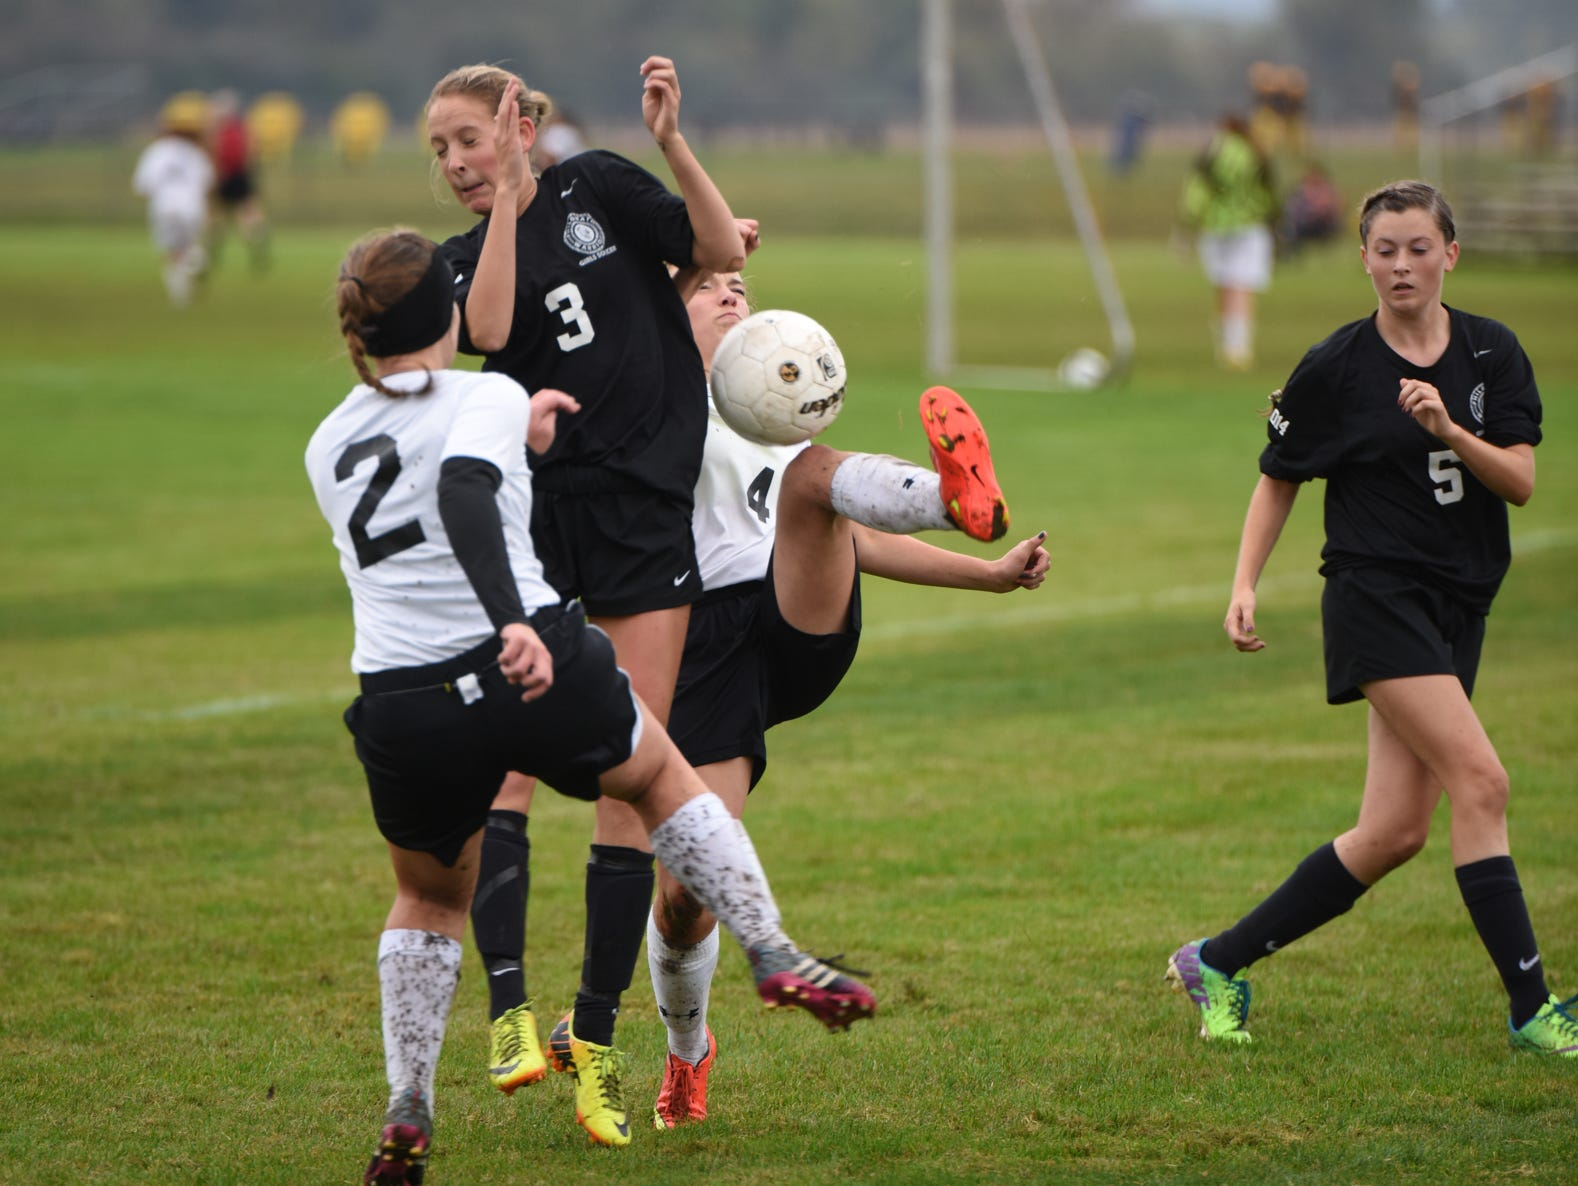 Philomath High girls' soccer holds onto its lead in the 4A-4 Oregon West Conference following its 3-1 win against Cascade High on Tuesday Oct. 14, 2014.